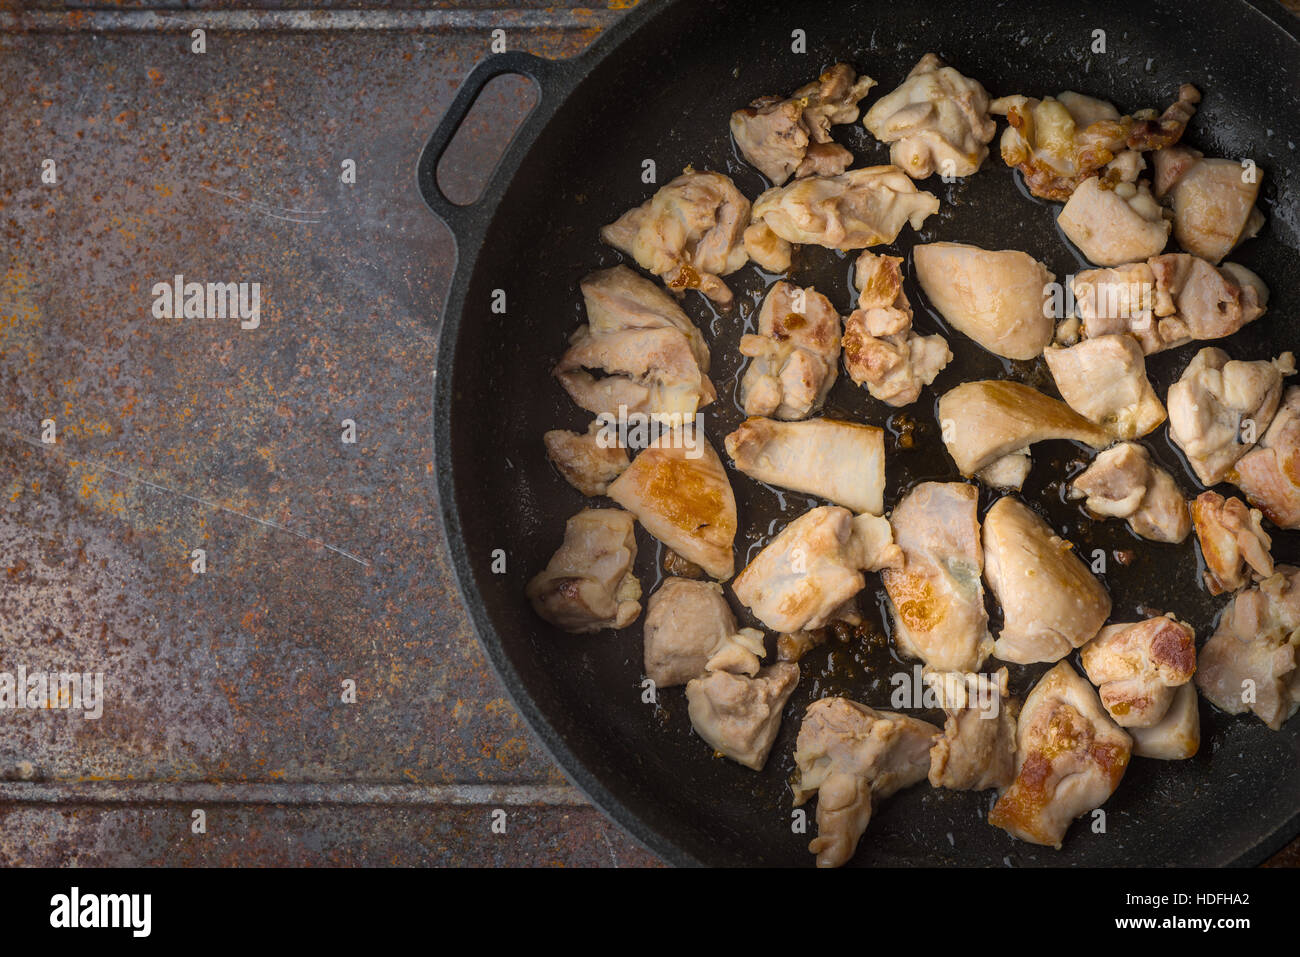 Fried chicken in the pan top view - Stock Image